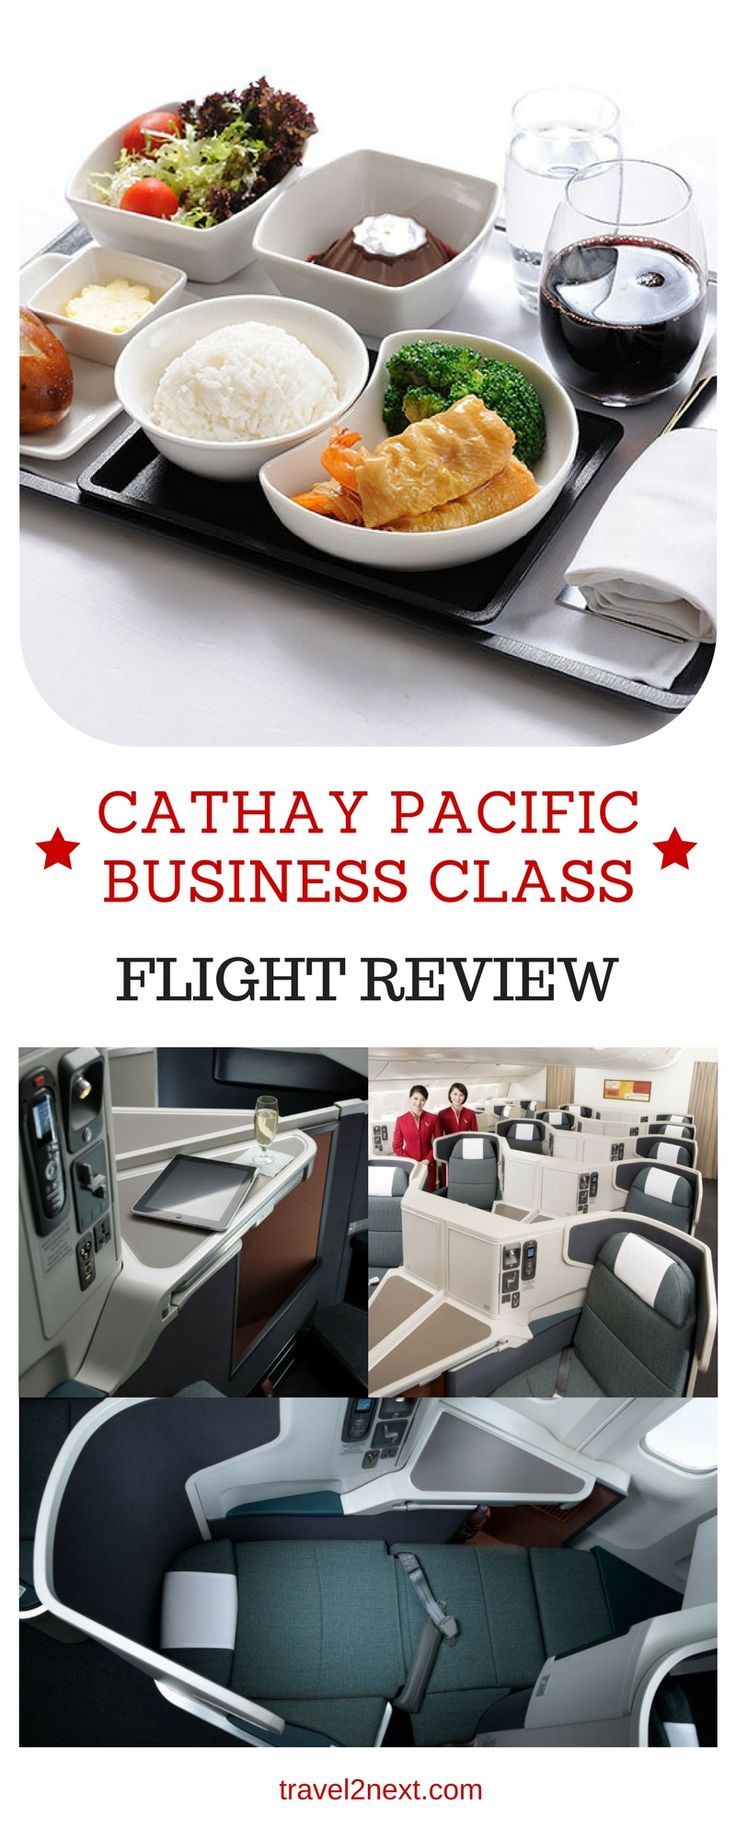 Cathay Pacific Business Class | Flight Review. I wasn't looking forward to my flight from Hong Kong to Brisbane